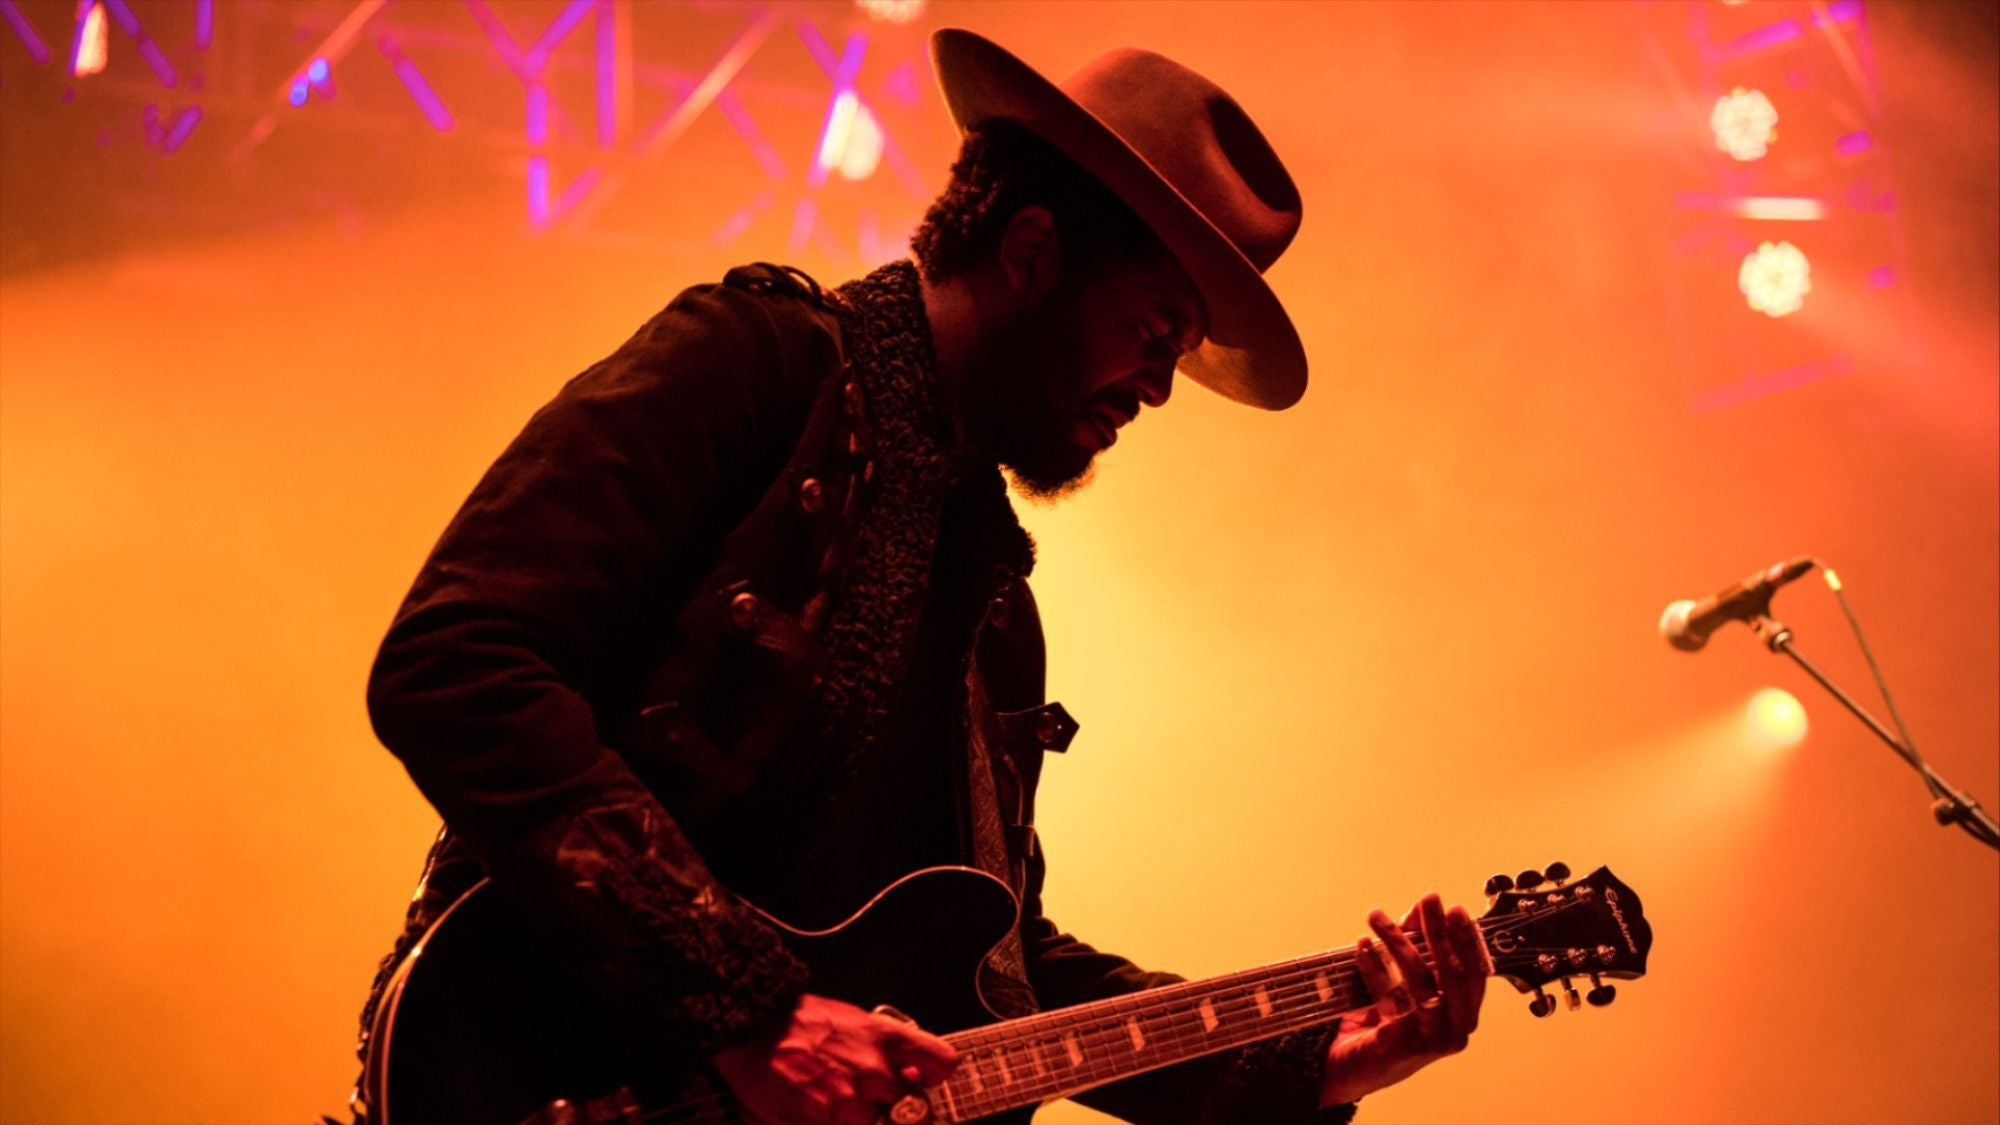 More Info for 10 Gary Clark Jr. Videos That Will Give You Goosebumps